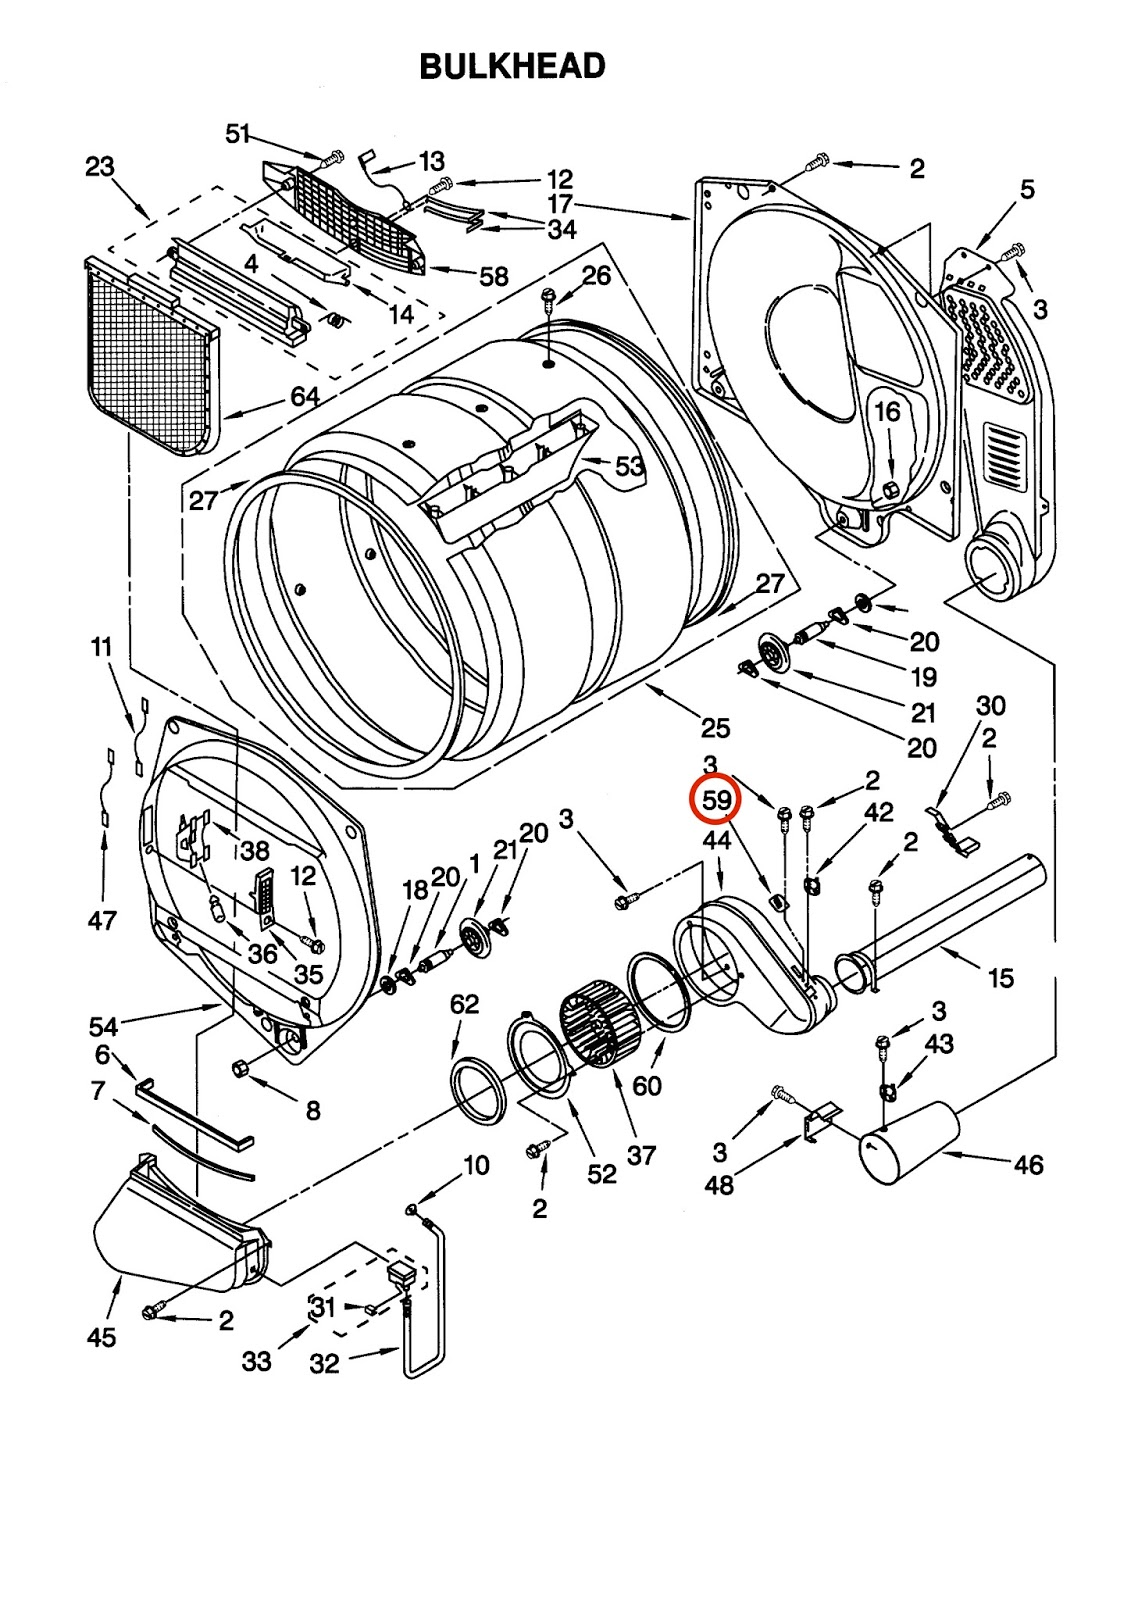 medium resolution of part 59 is the thermal fuse click for a larger version